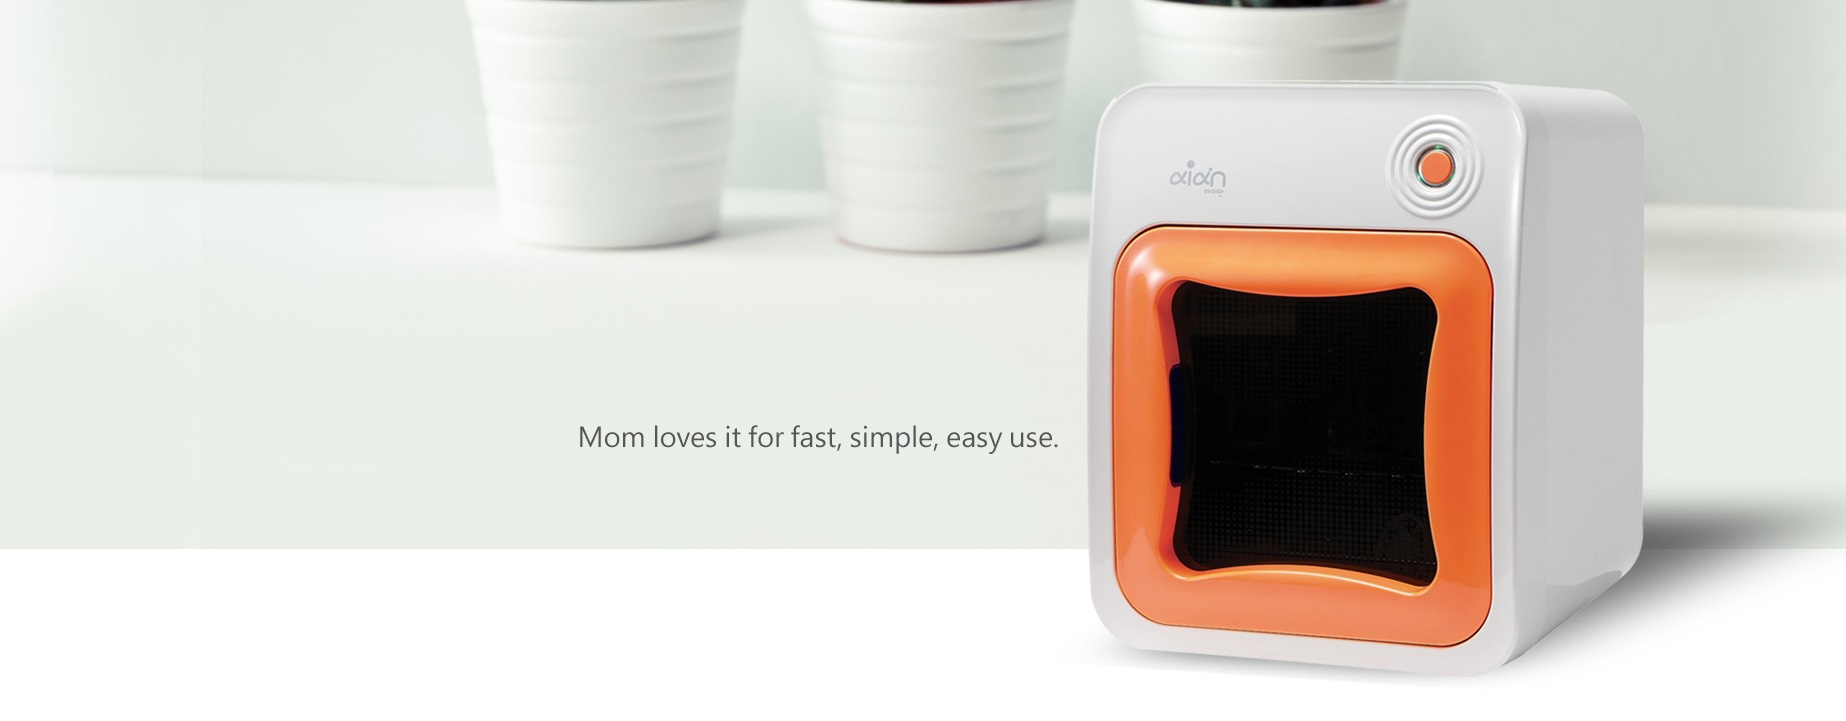 Aian Sterilizer & Dryer - Mom Loves it for fast, simple, easy use